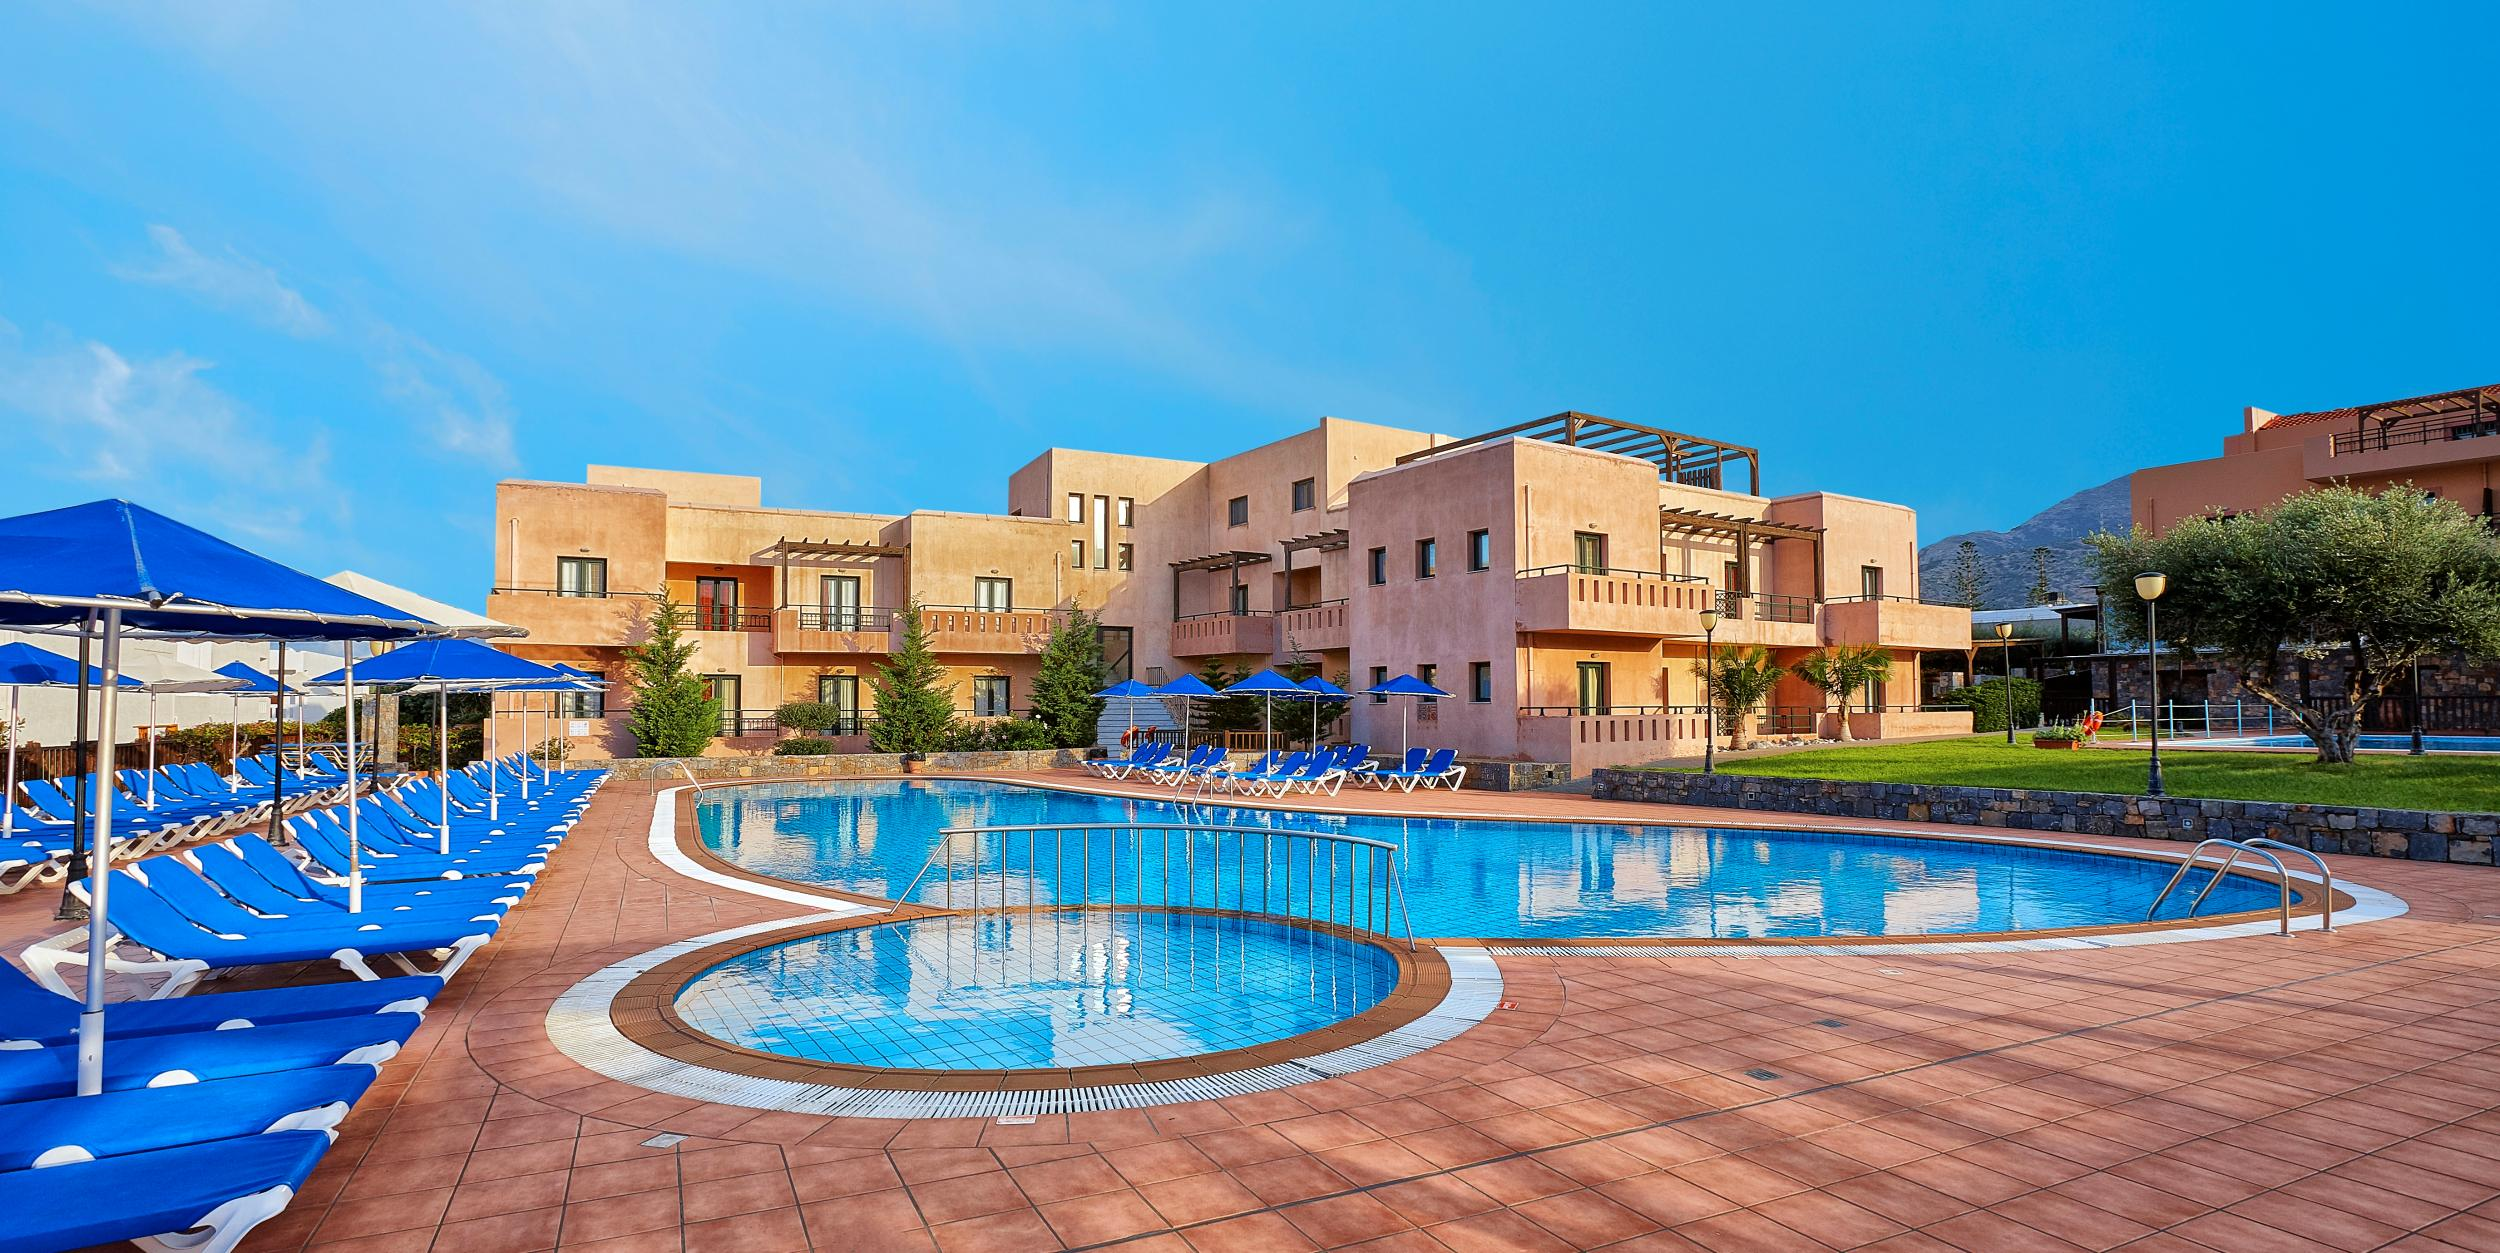 Sentido Vasia Beach Resort and Spa in Sissi, Crete, Greek Islands